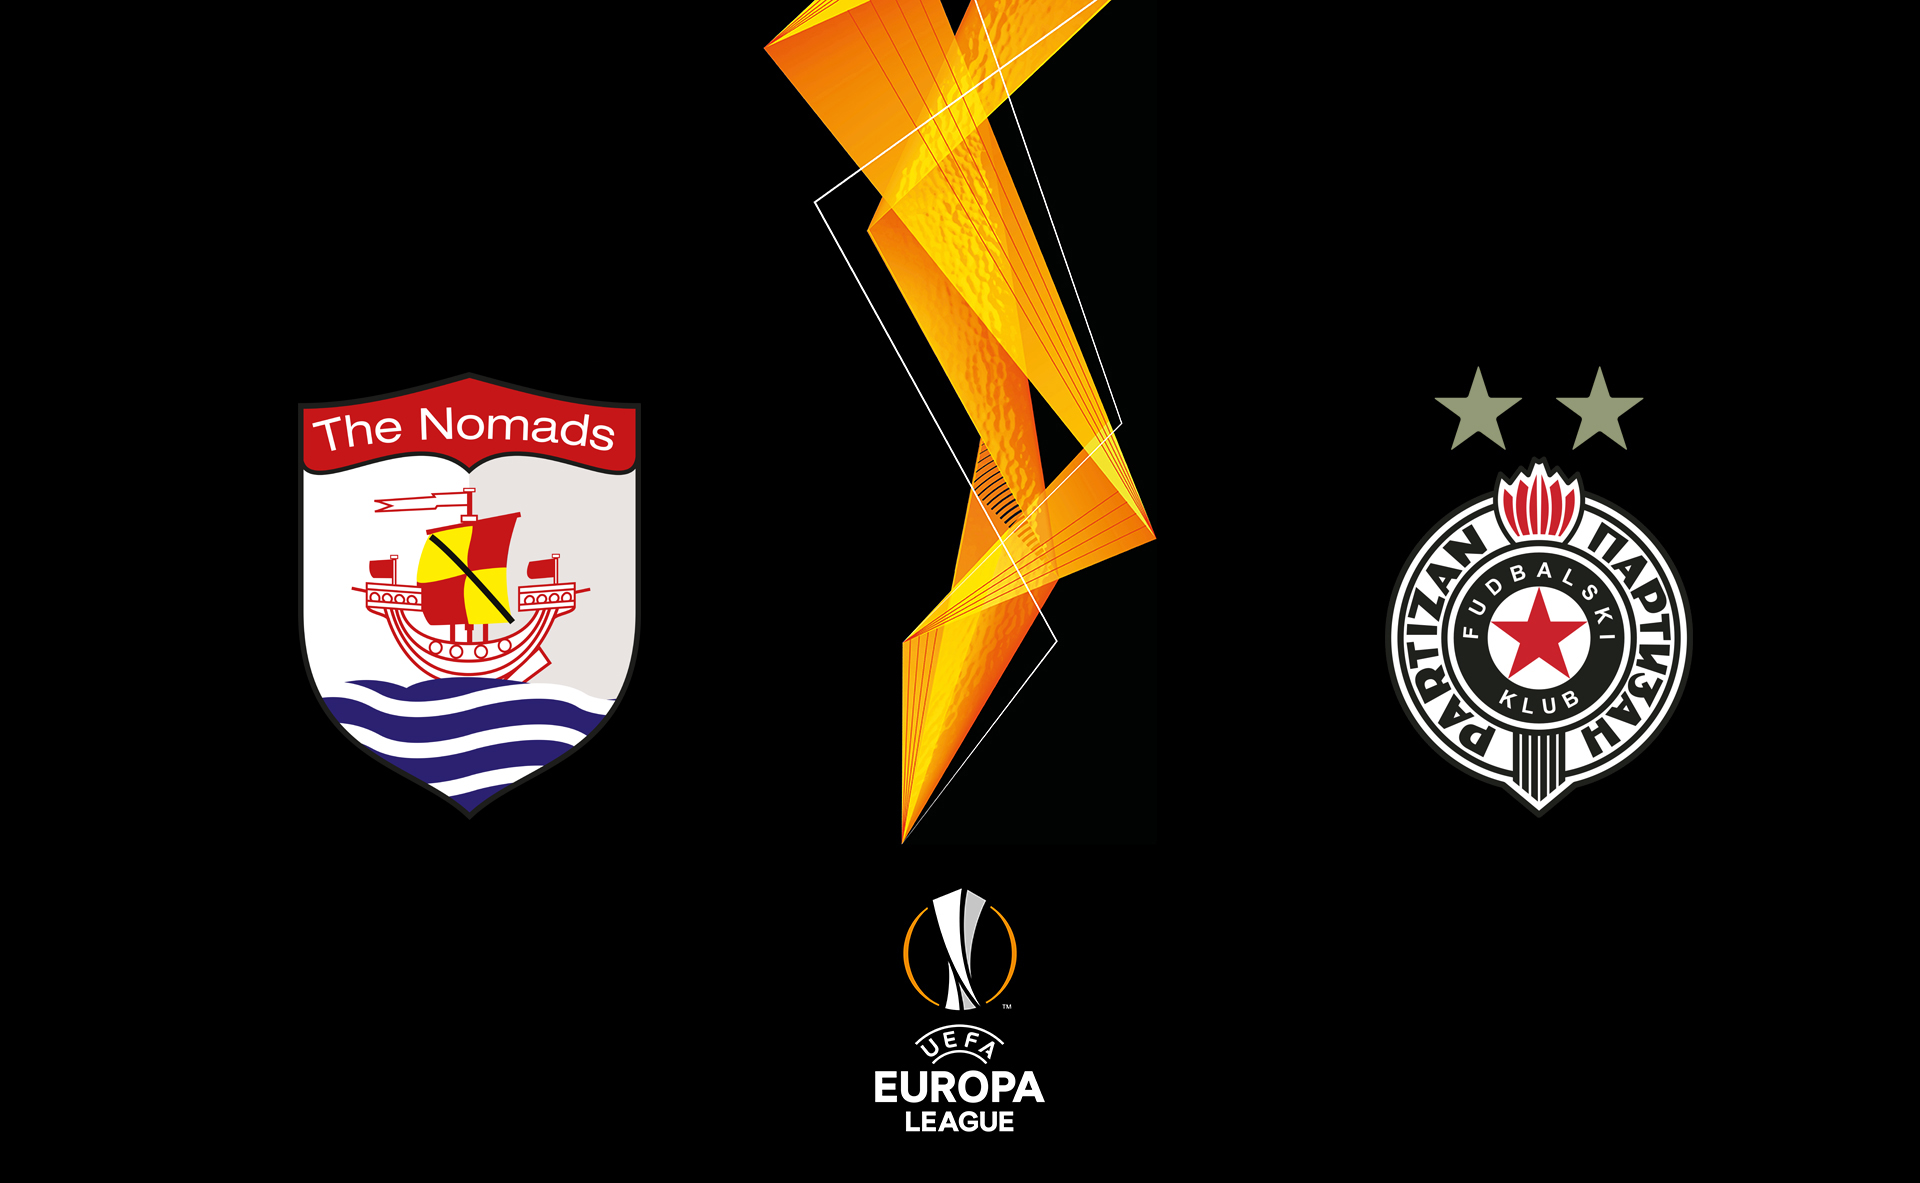 Connah's Quay Nomads vs FK Partizan in the UEFA Europa League Second Round